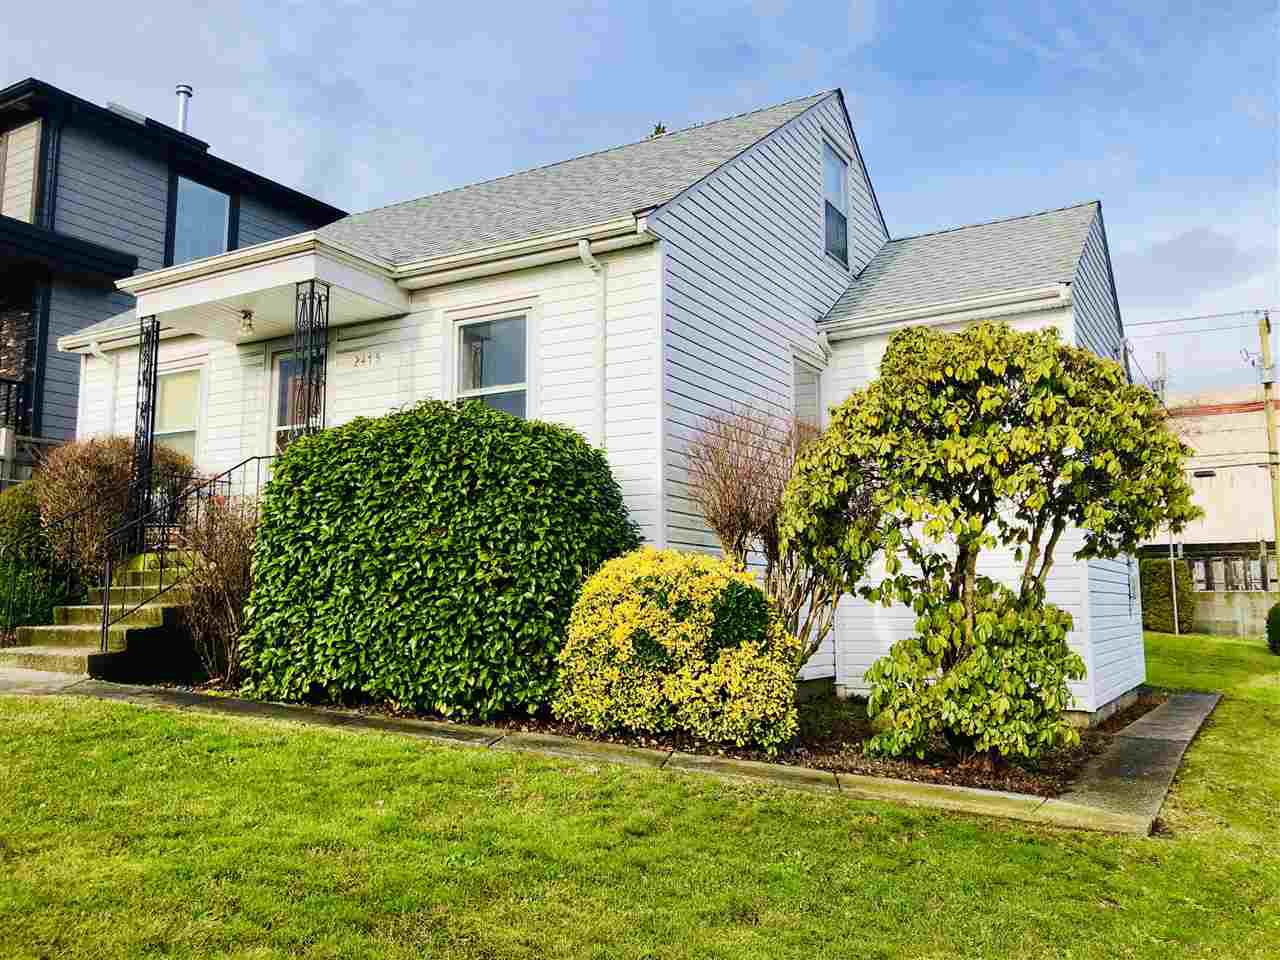 Main Photo: 2475 E 2ND Avenue in Vancouver: Renfrew VE House for sale (Vancouver East)  : MLS®# R2328625